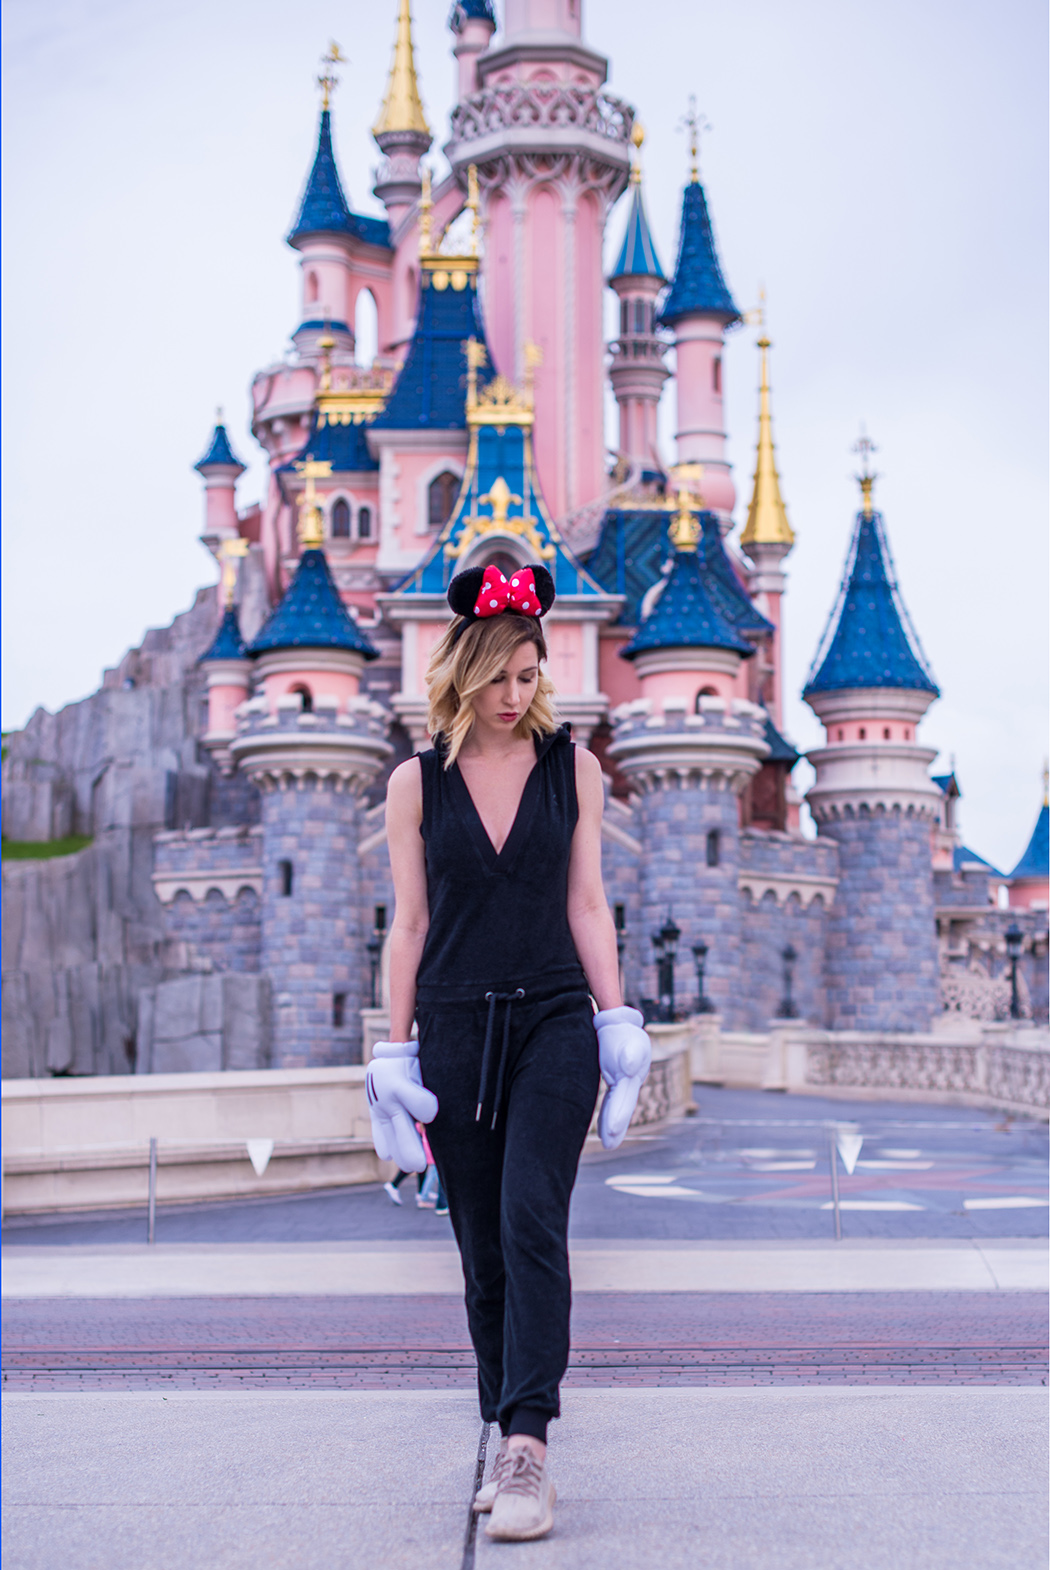 Fashionblog-Fashionblogger-Fashion-Blog-Blogger-Lindarella-One_Piece-Disneyland_Paris-2-web